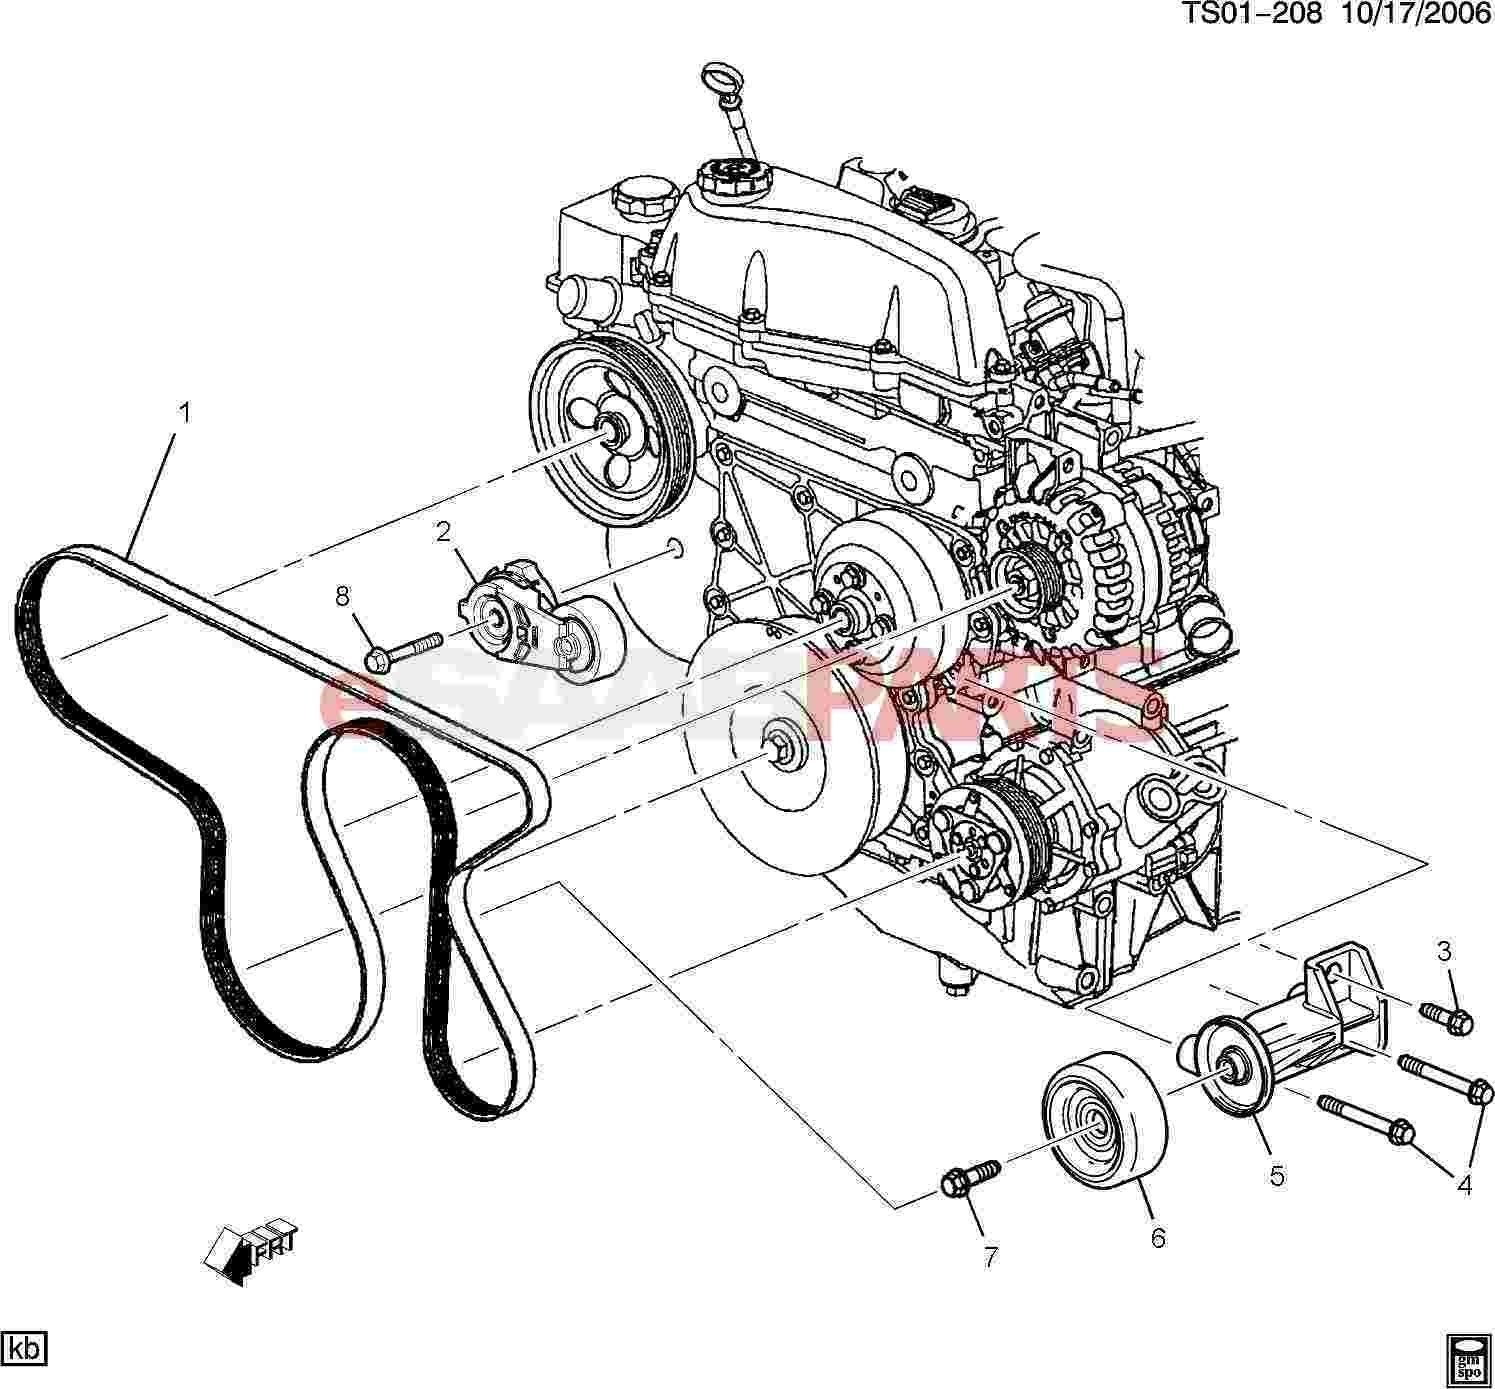 2001 subaru outback exhaust system diagram 2002 mitsubishi eclipse speaker wiring engine